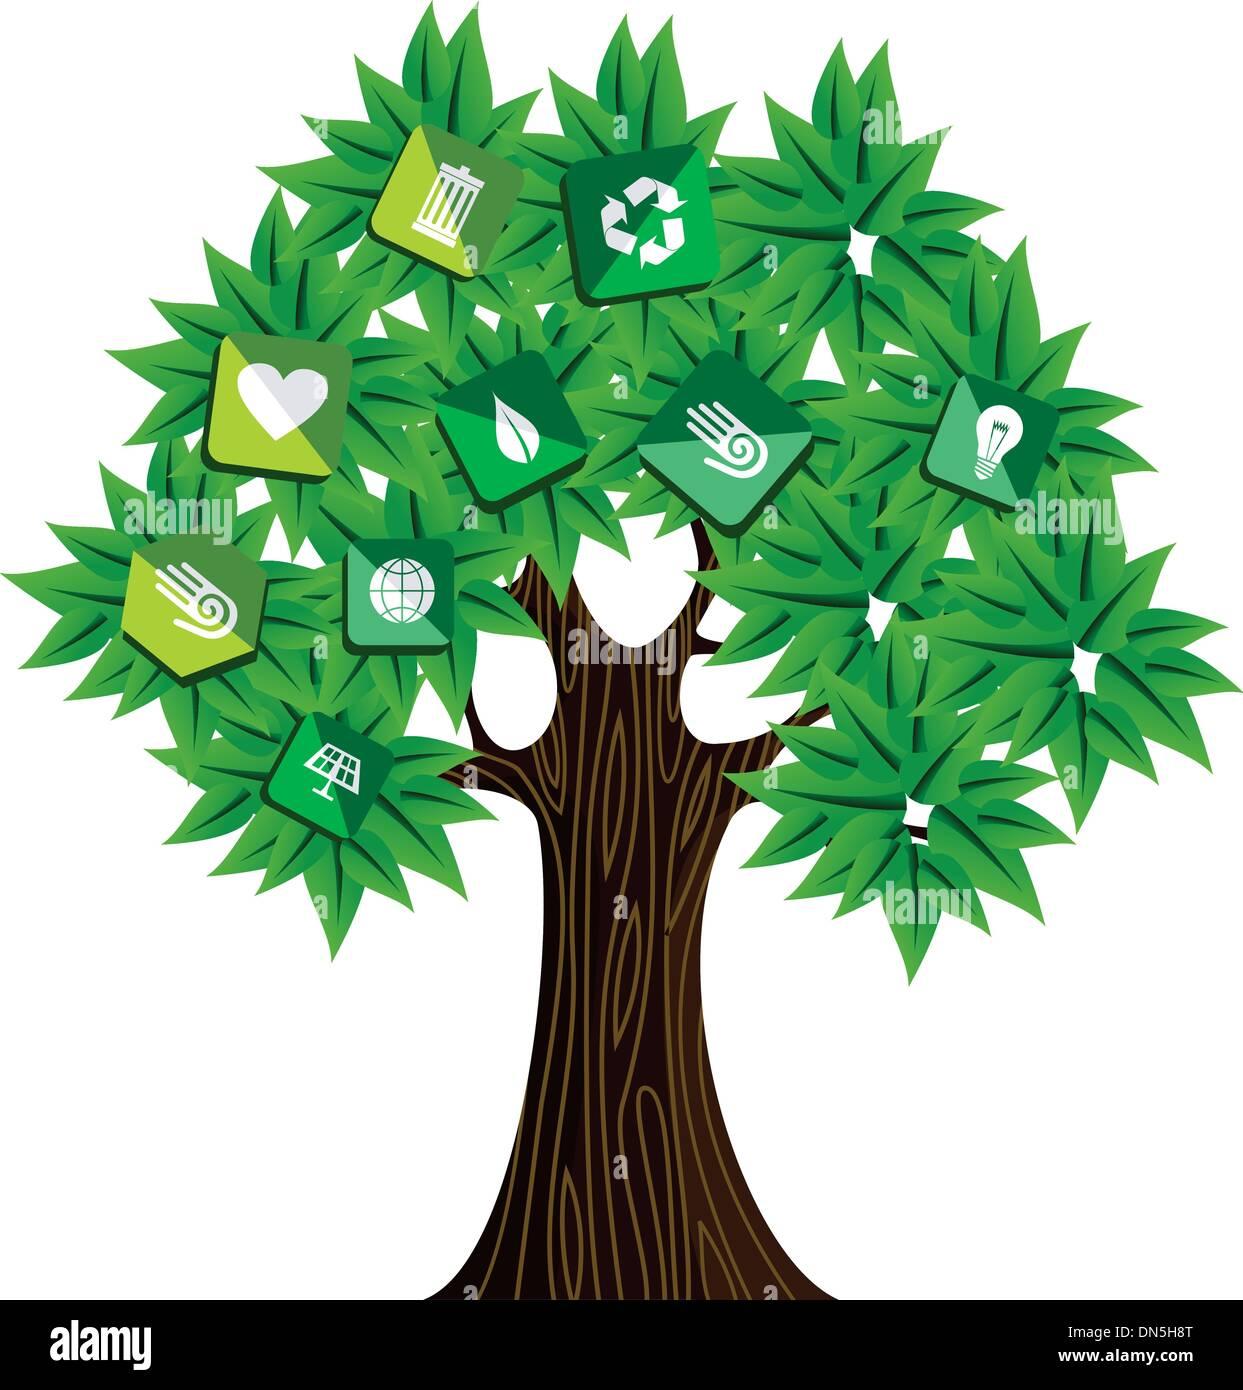 Green resources concept tree Stock Vector Art & Illustration